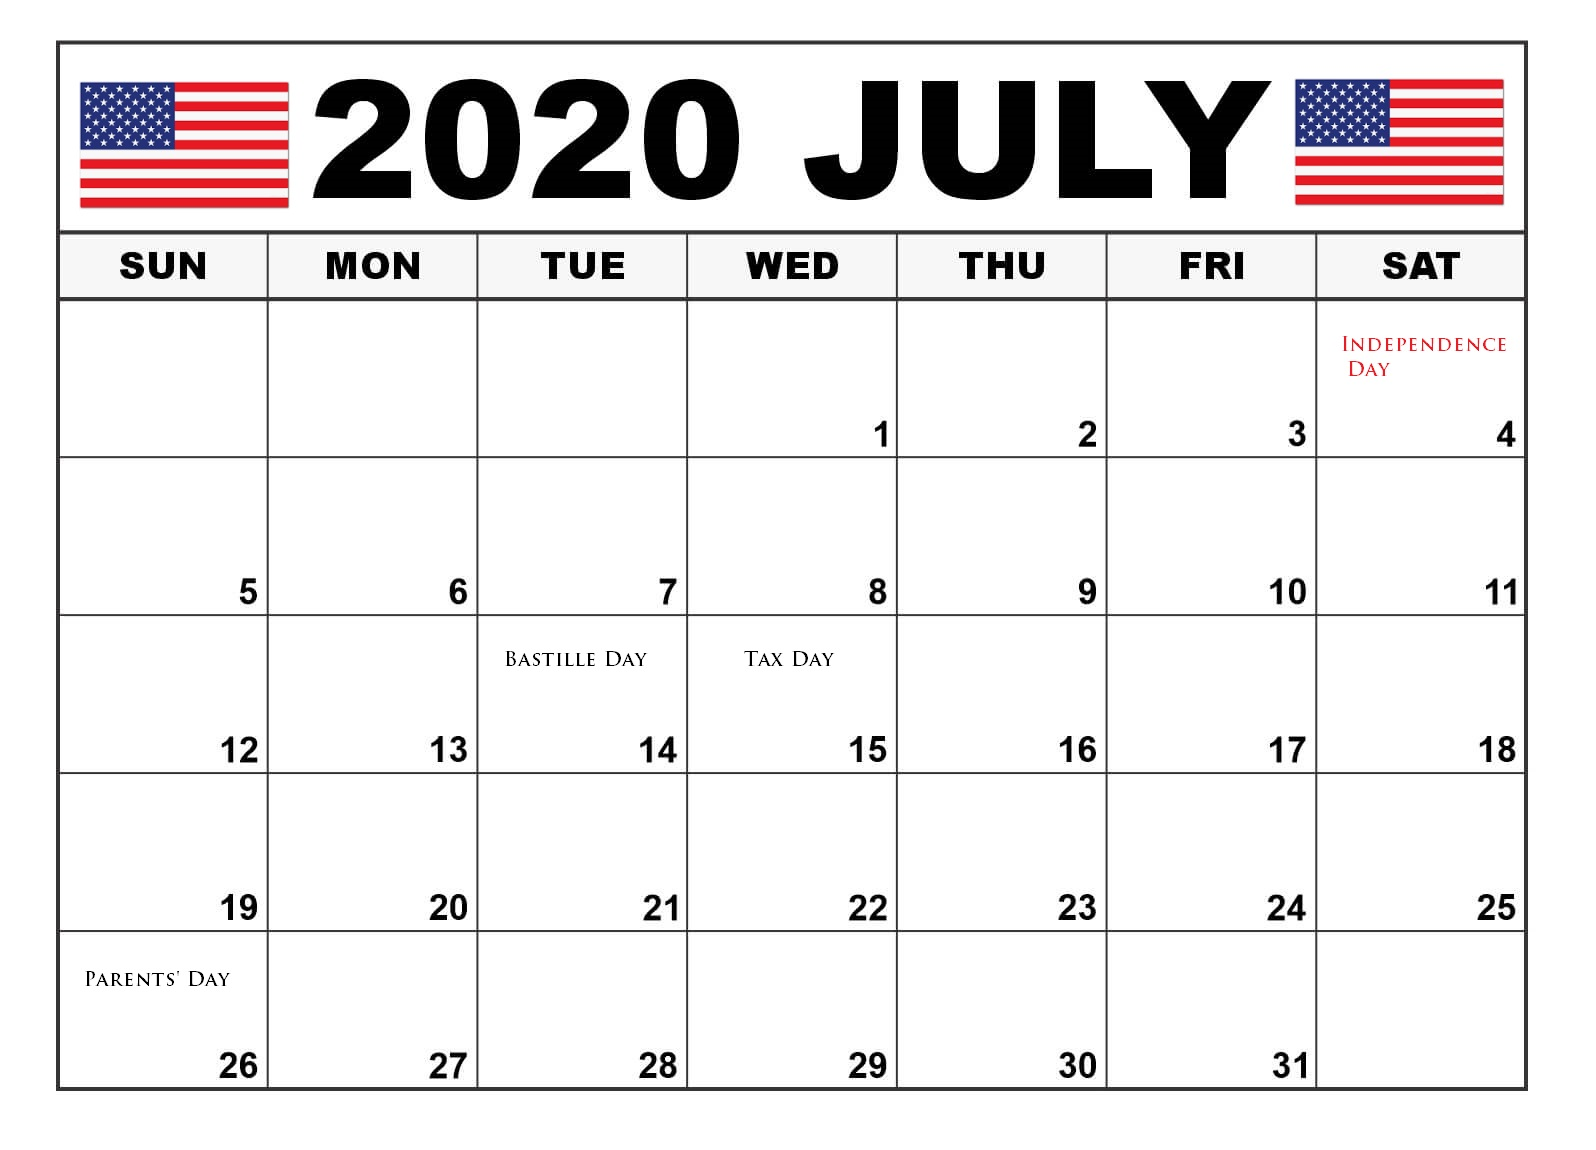 July 2020 US Holidays